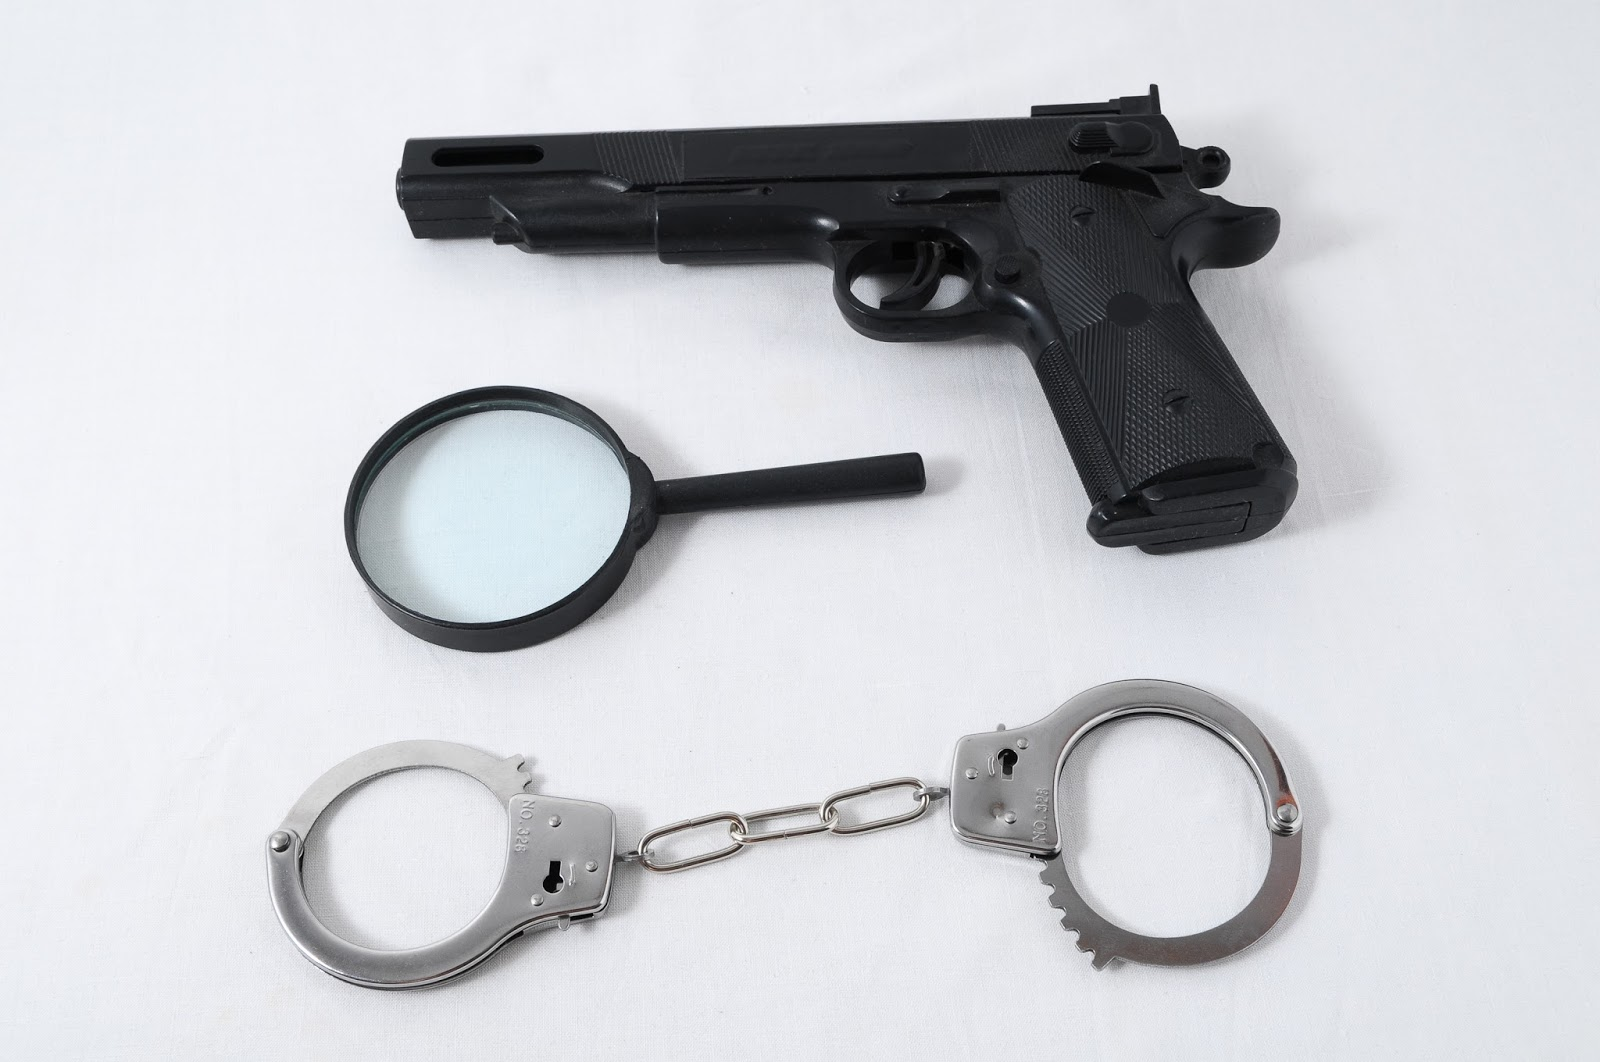 how to get a concealed weapons permit in nh